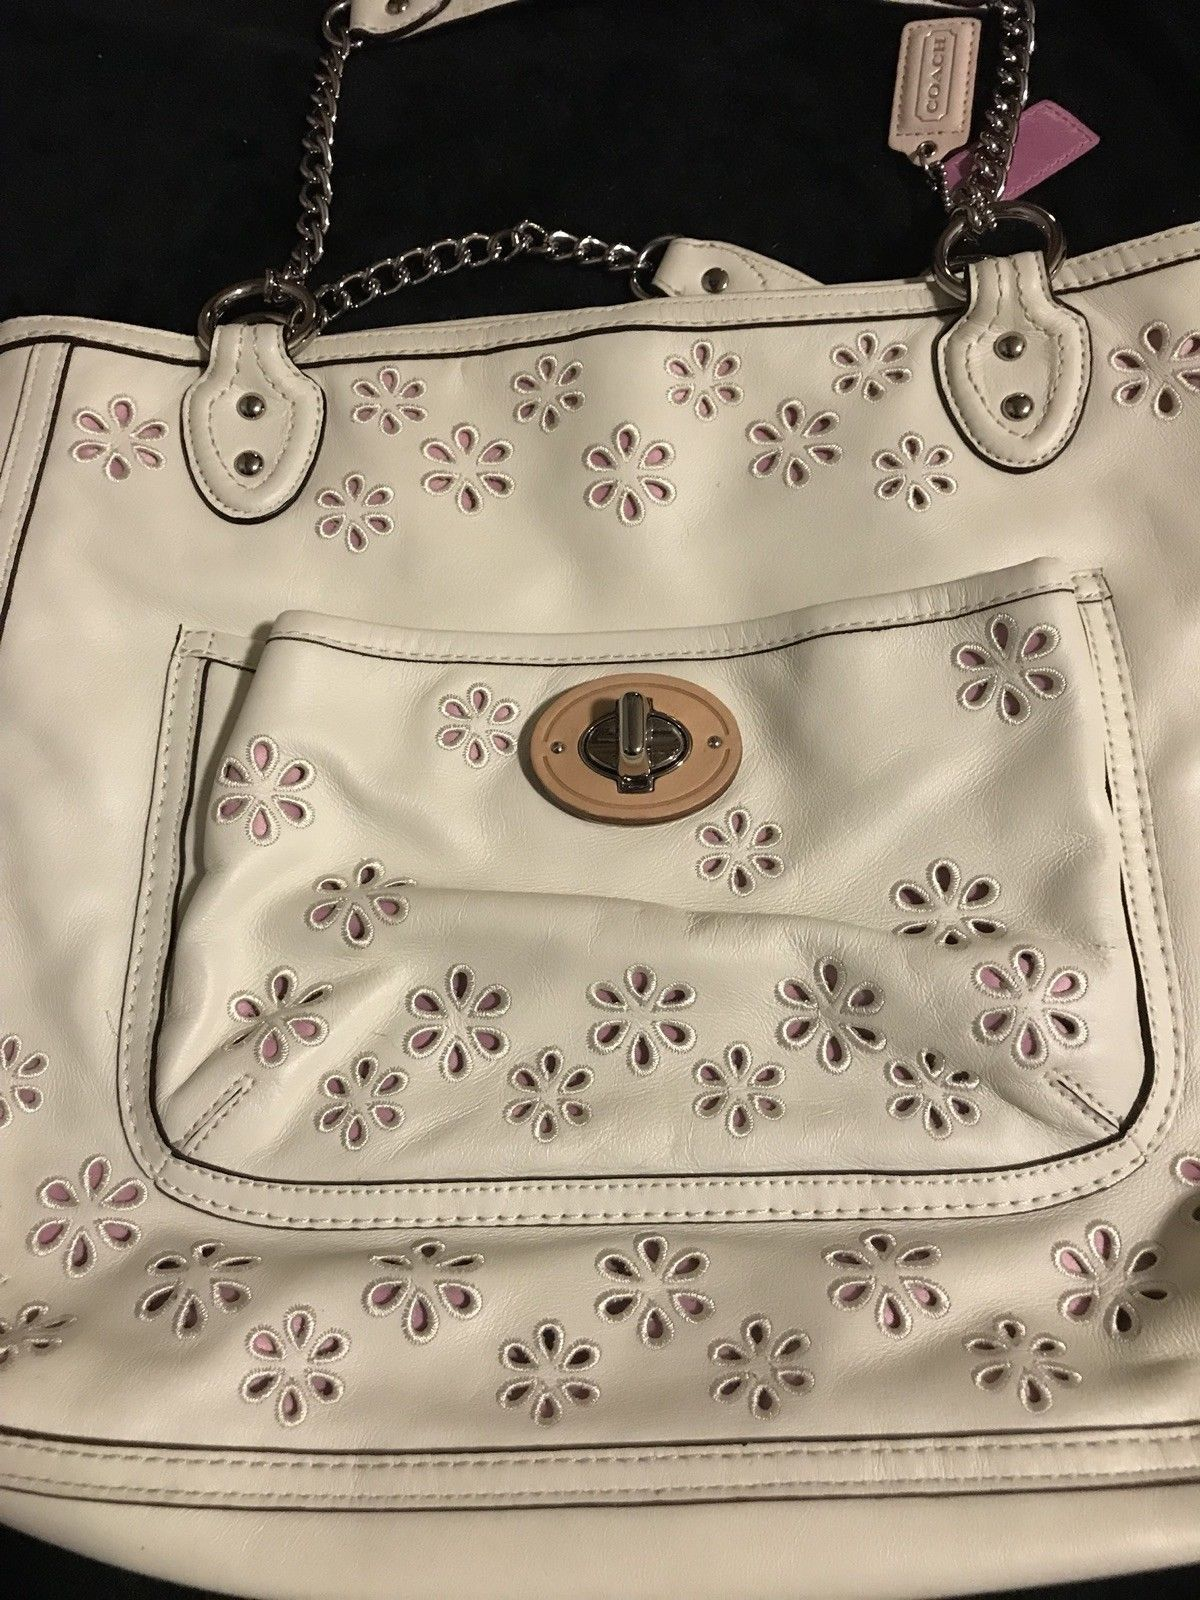 White creme leather laser cut pink flowers coach handbag coach white creme leather laser cut pink flowers coach handbag mightylinksfo